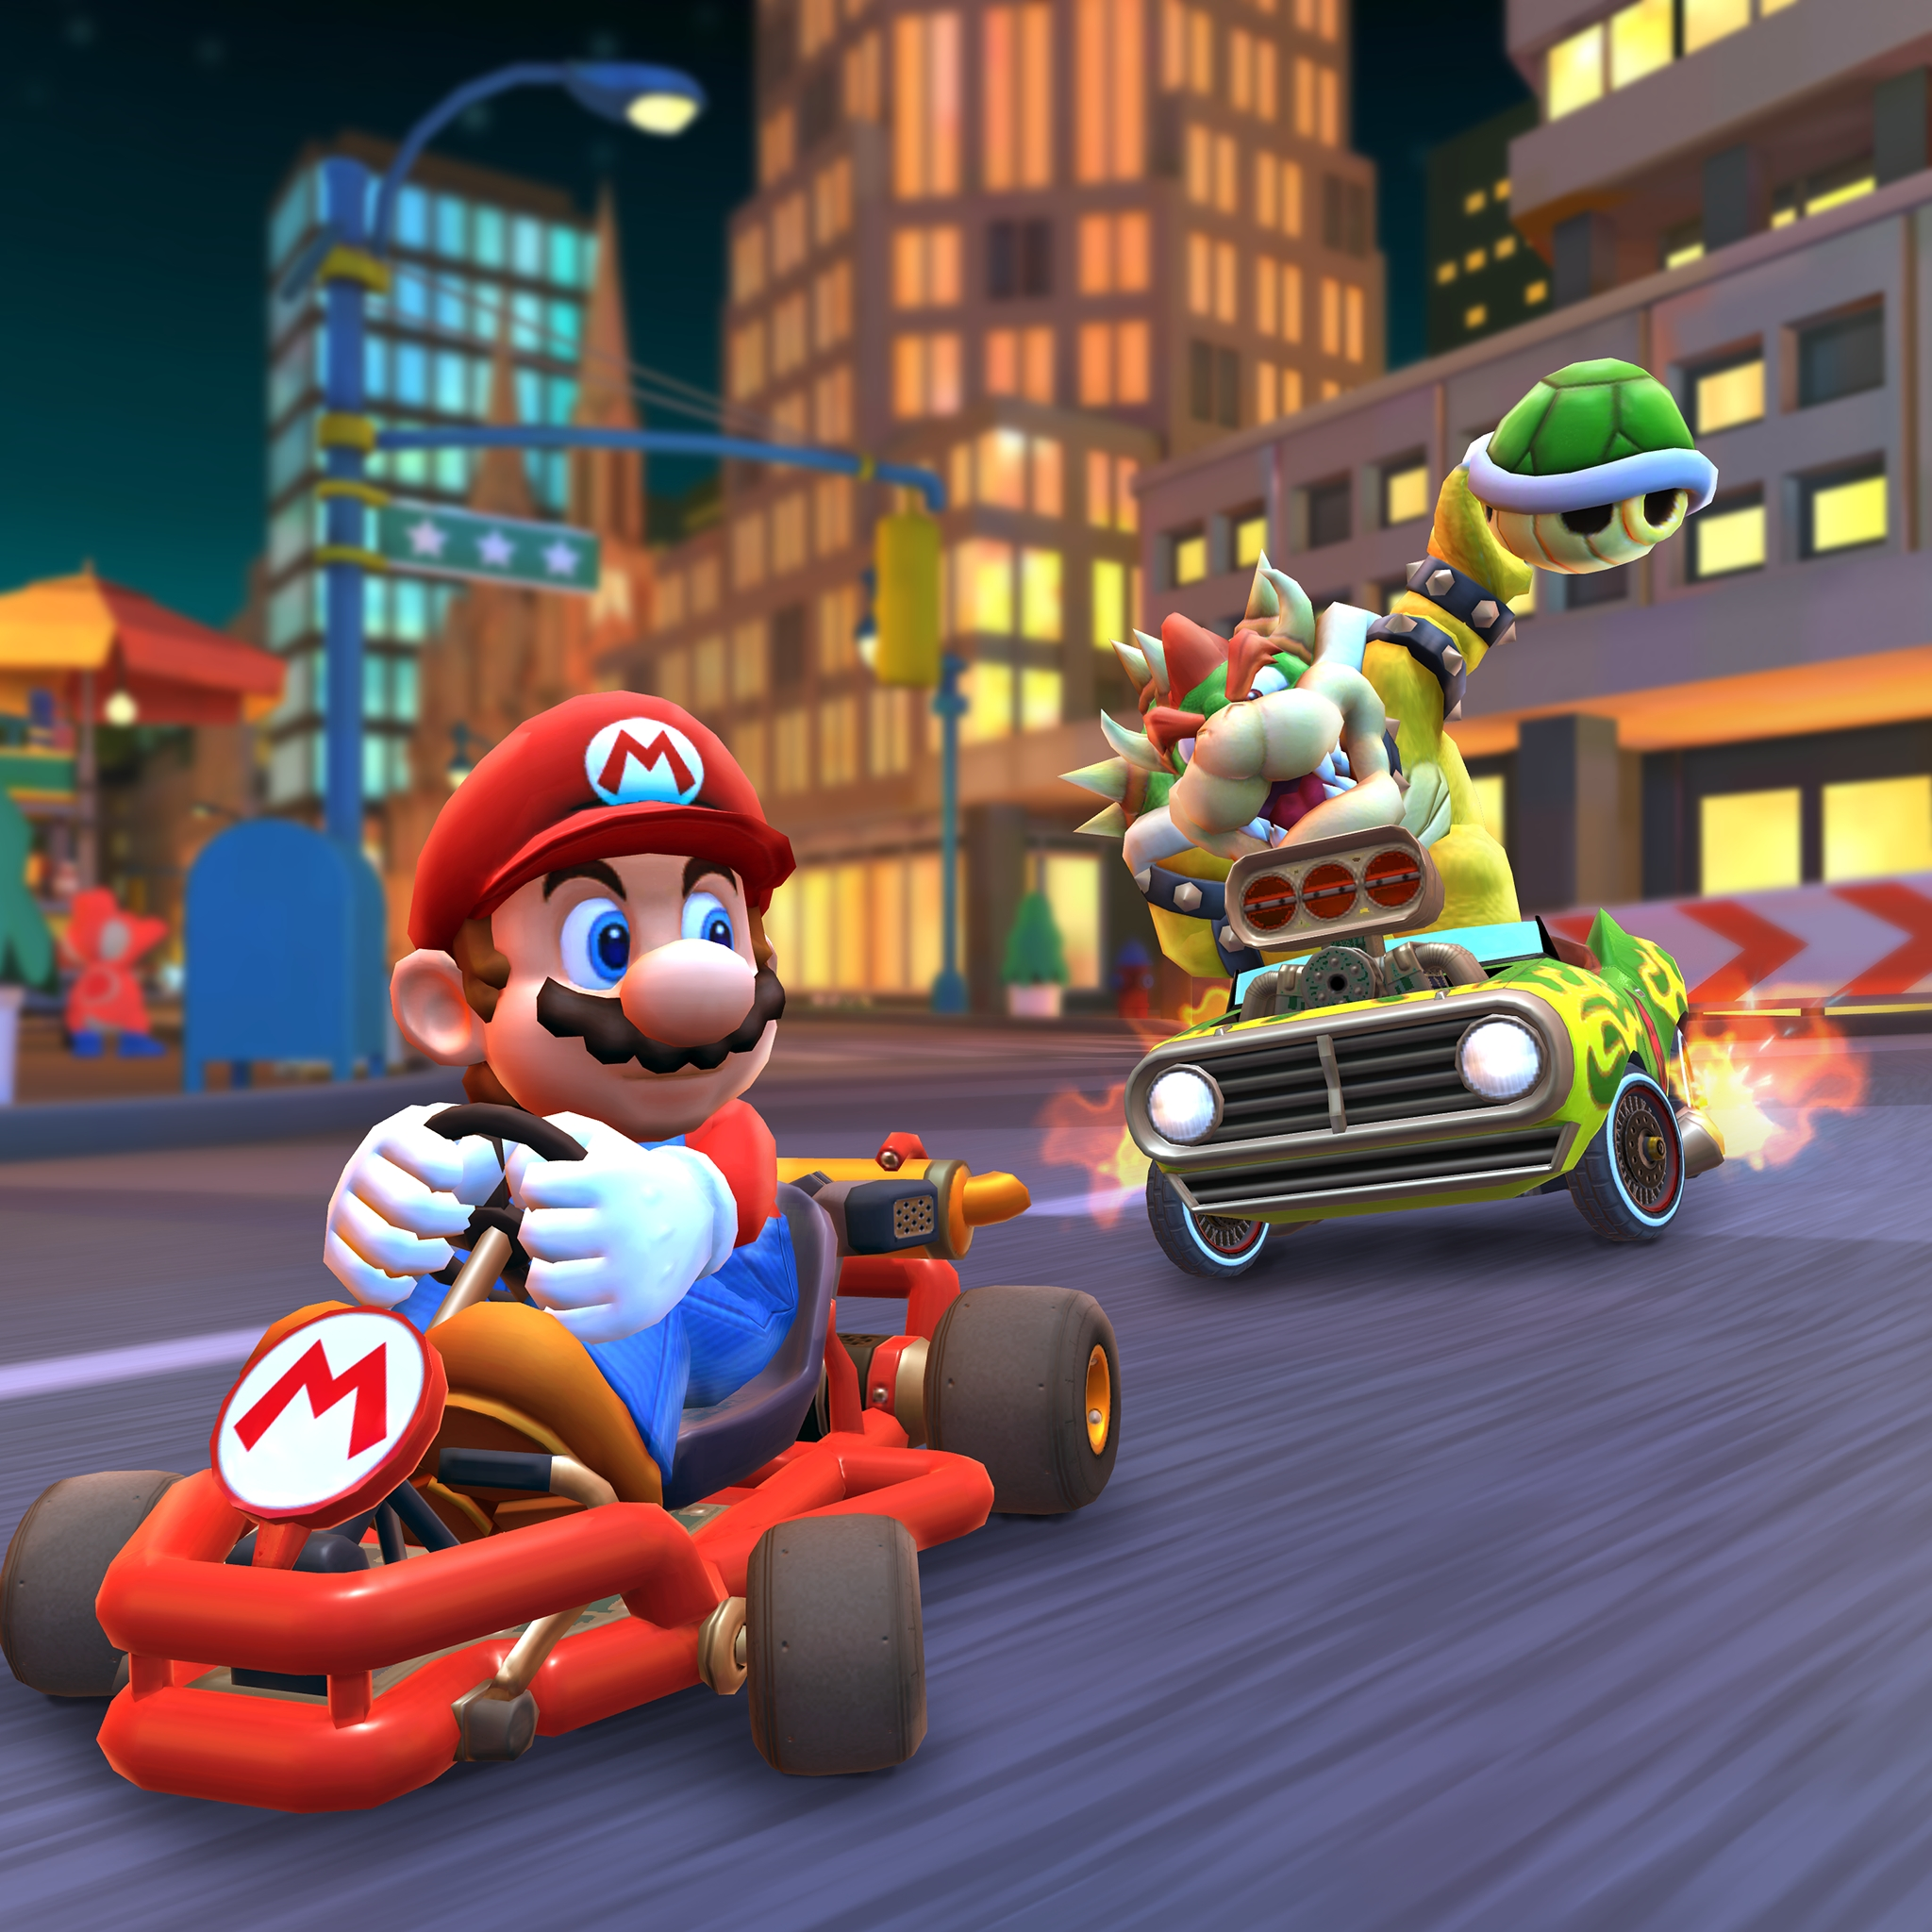 Let's-A Race! Mario Kart Tour is Now Available on Smartphones – TechPope